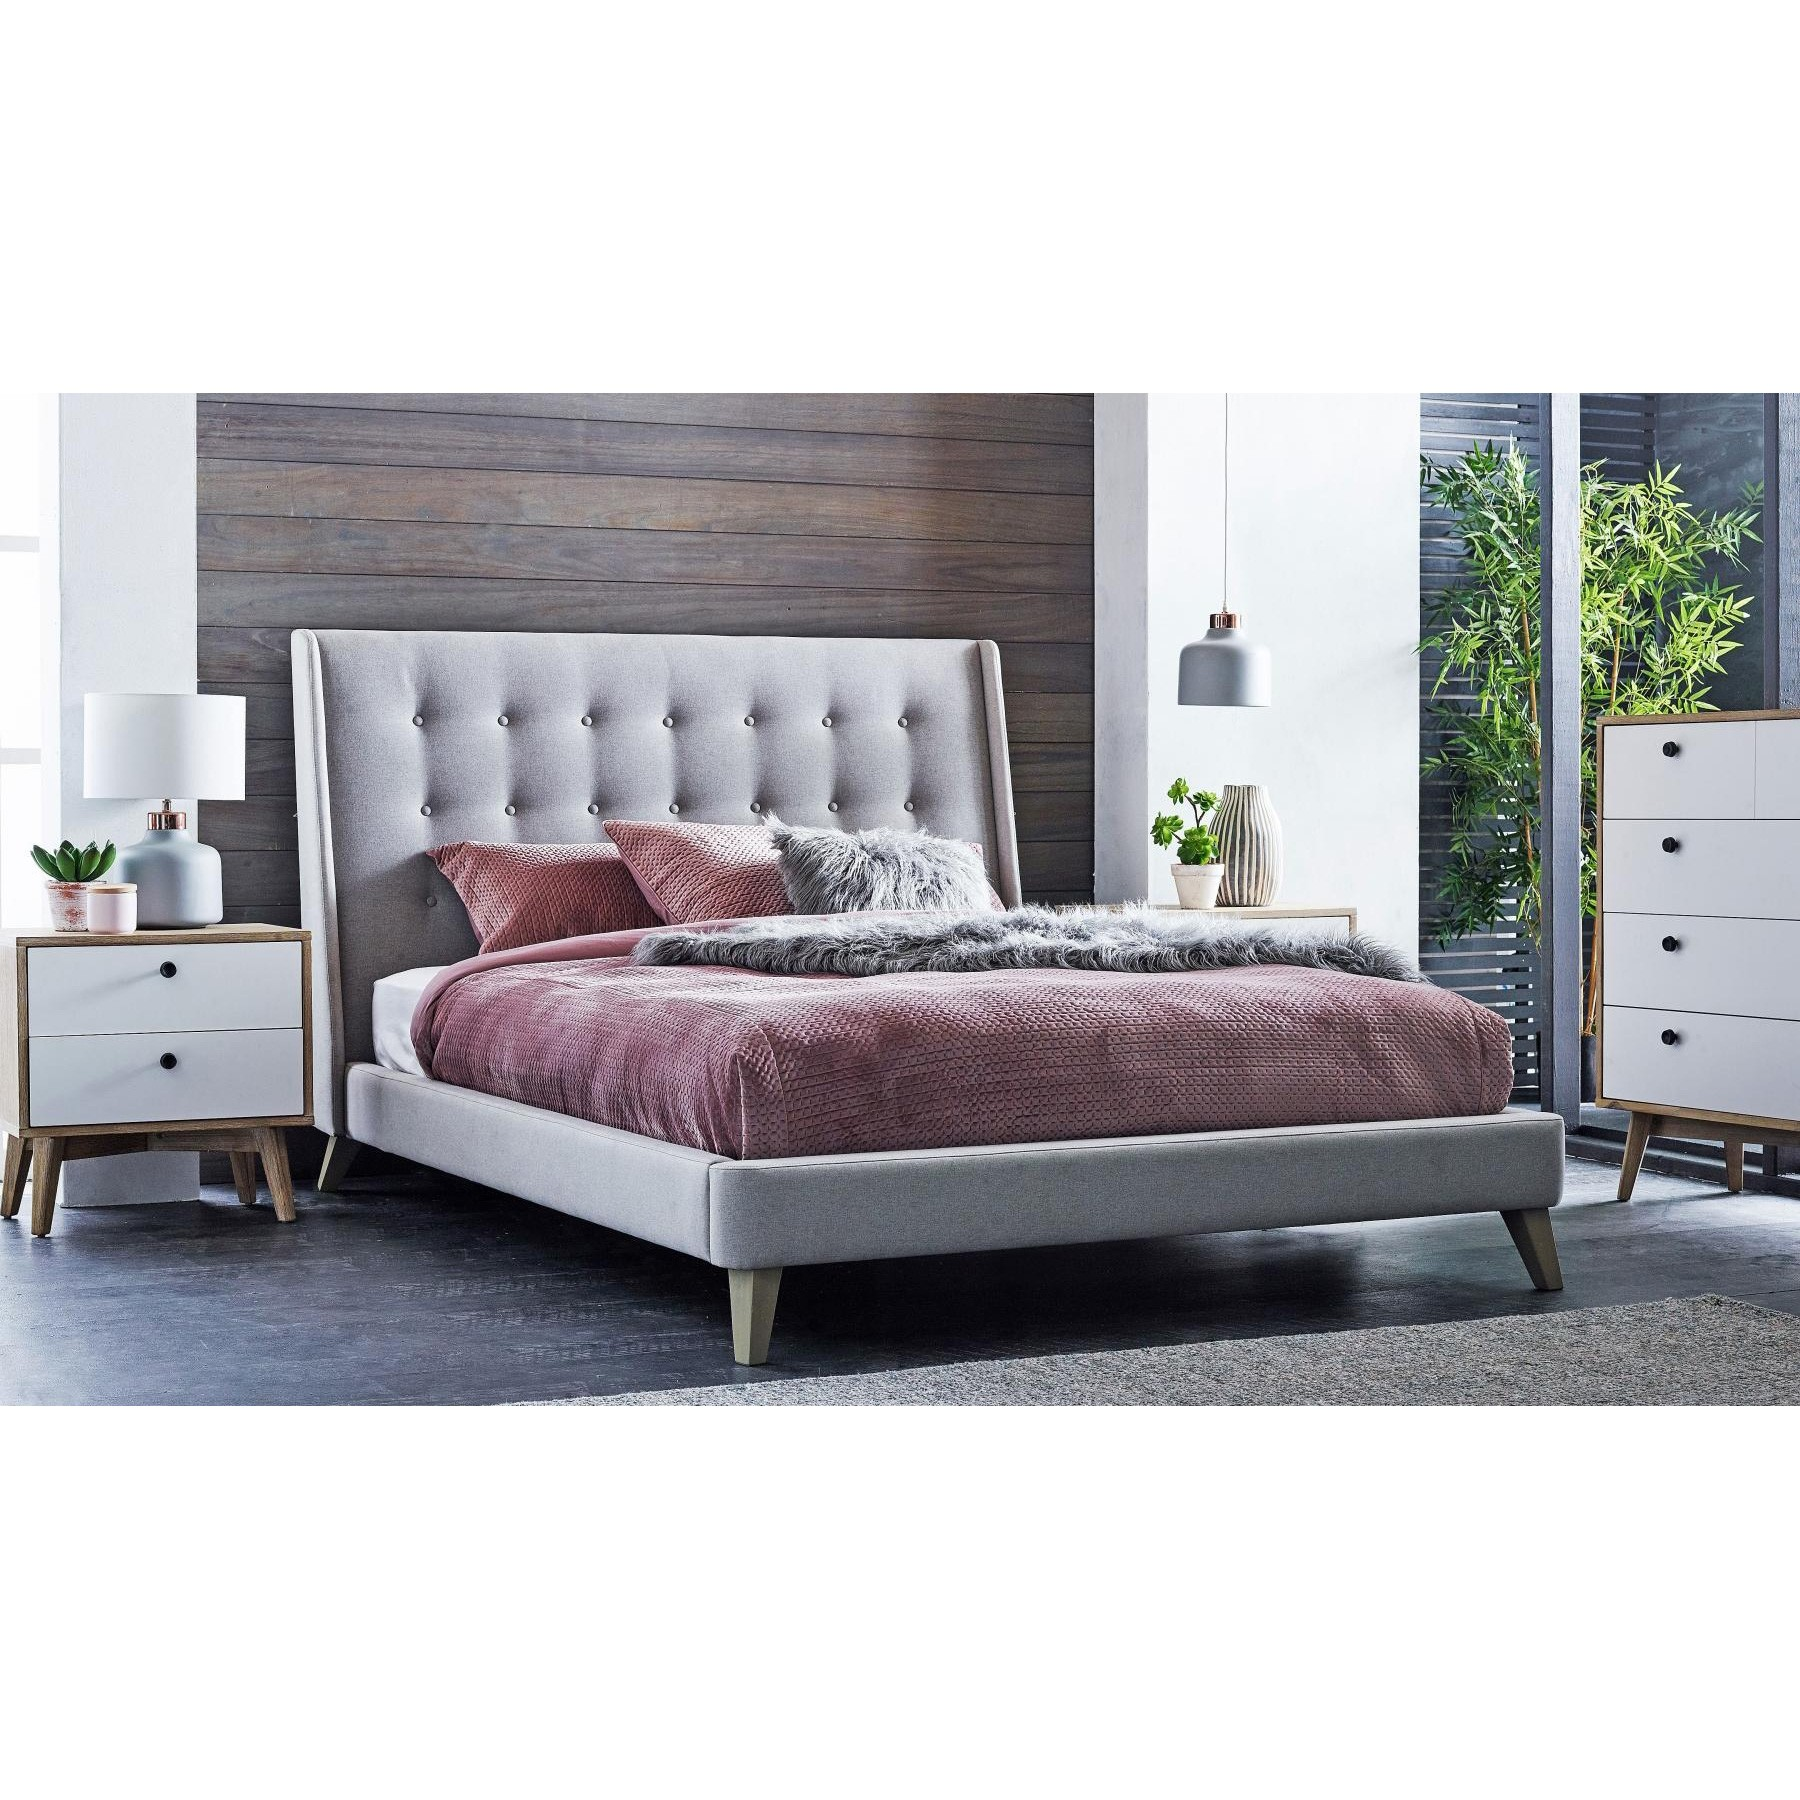 Eva 4 Piece Bedroom Tallboy Suite, Queen